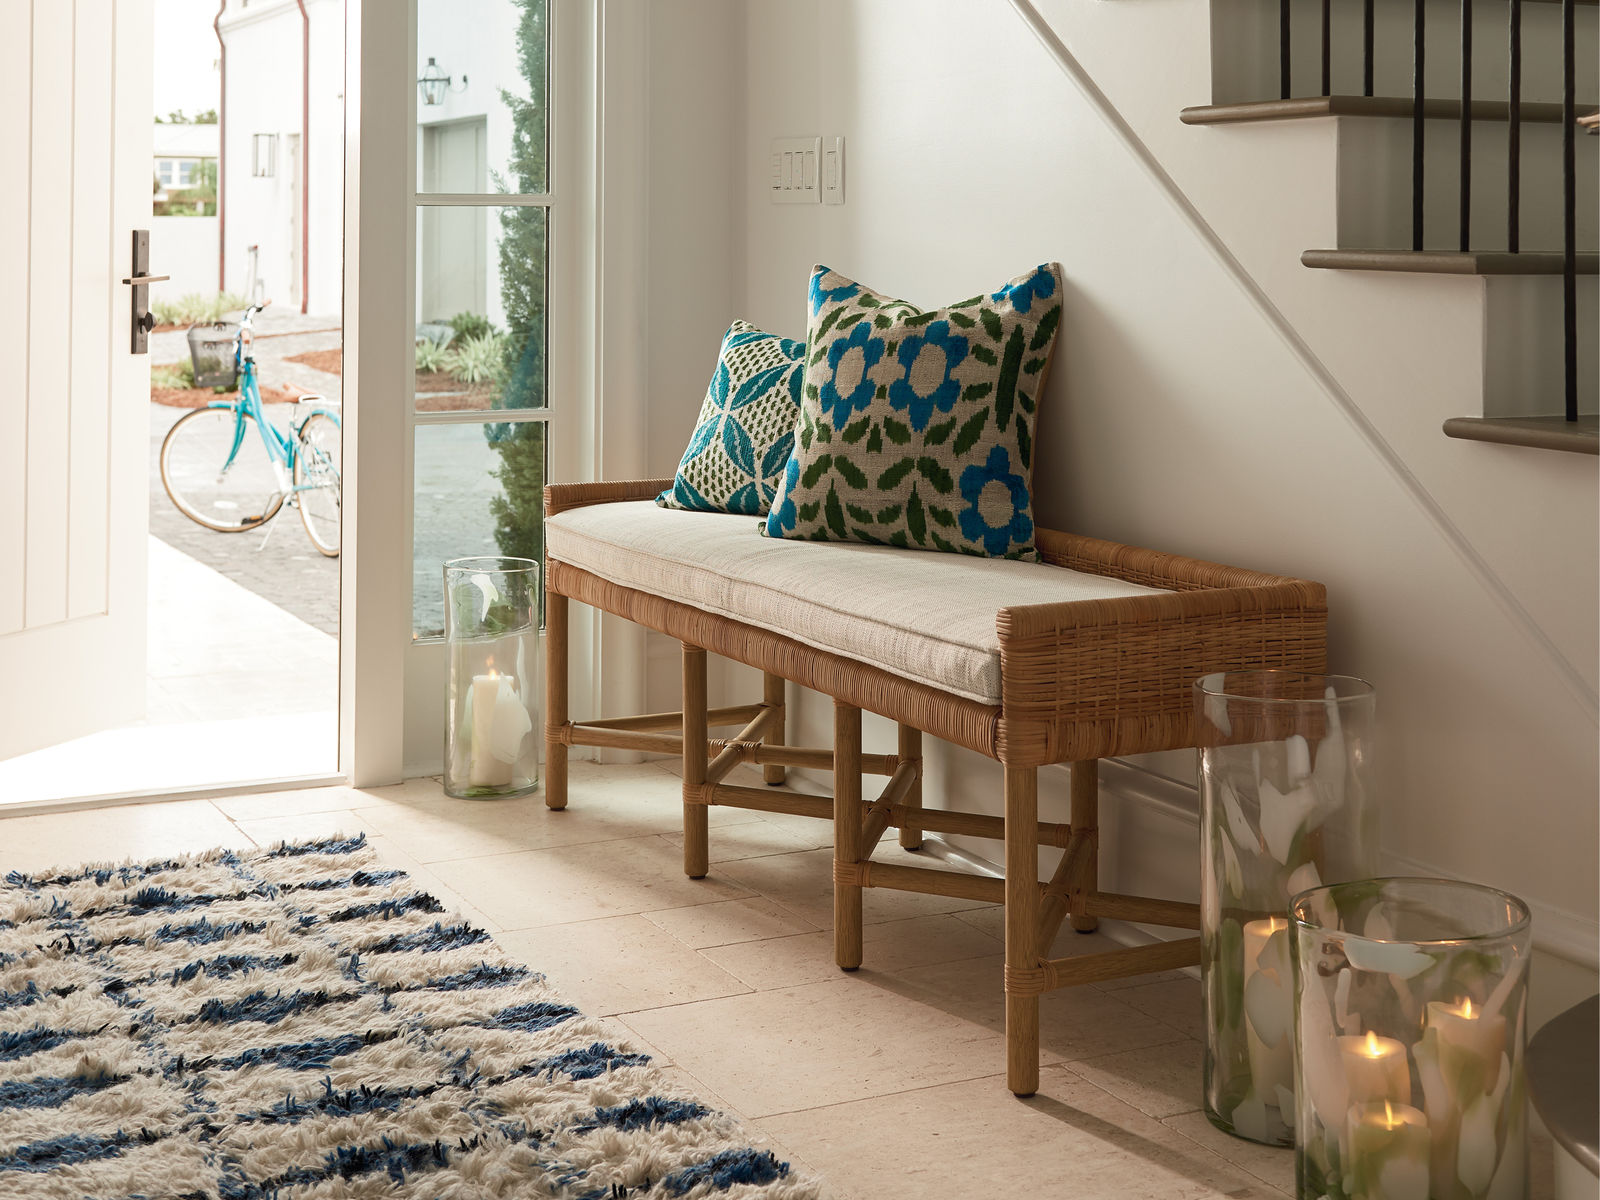 Bench with blue pillows on it